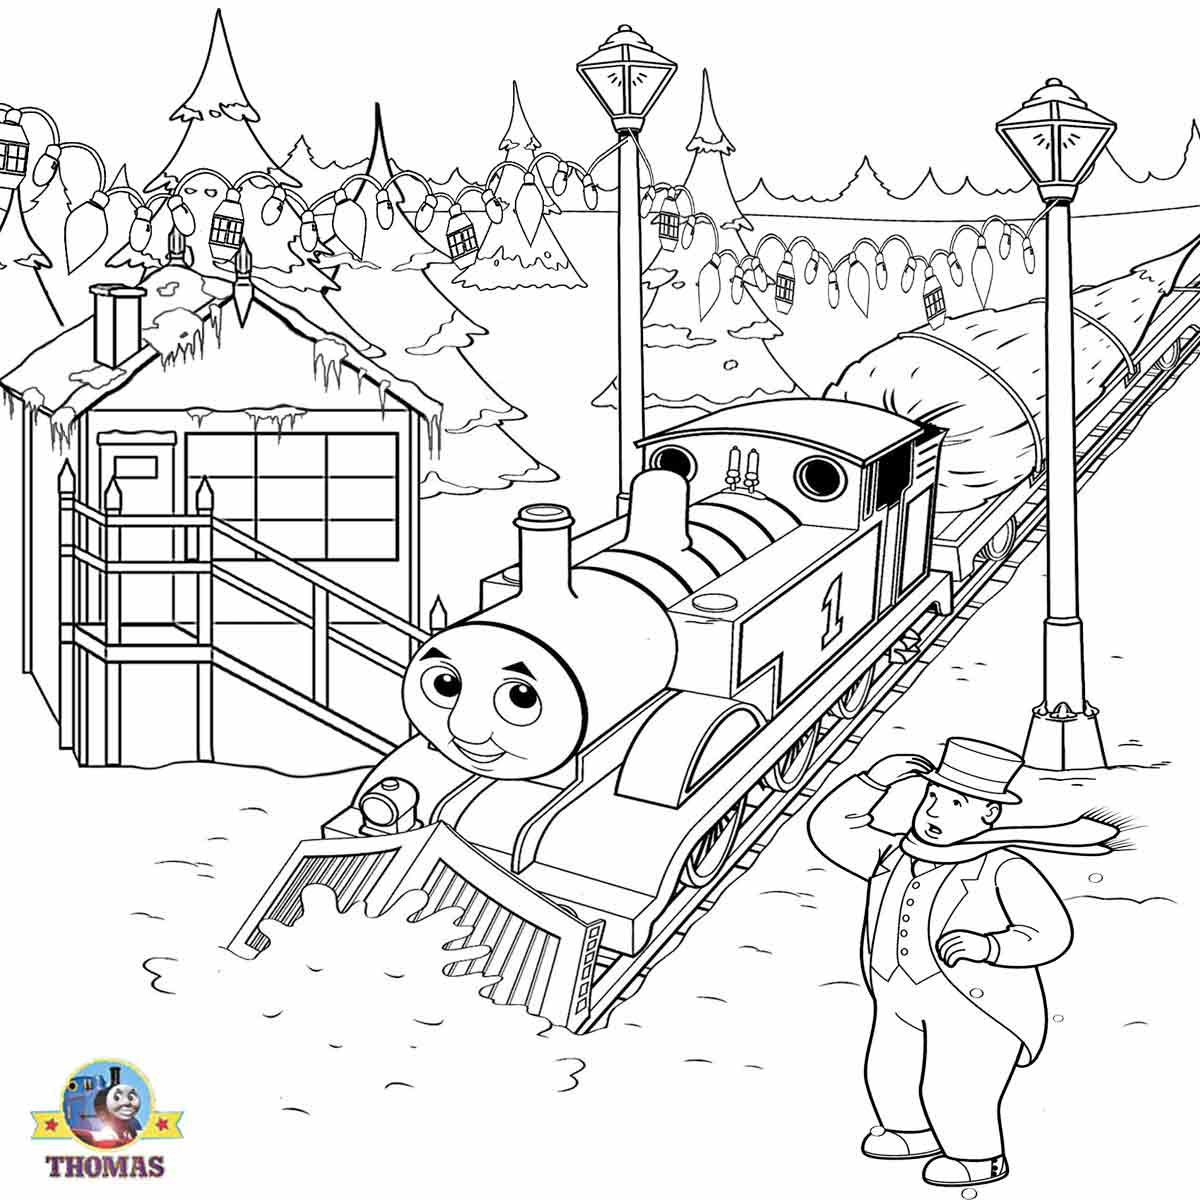 thomas and friend coloring pages - photo#28